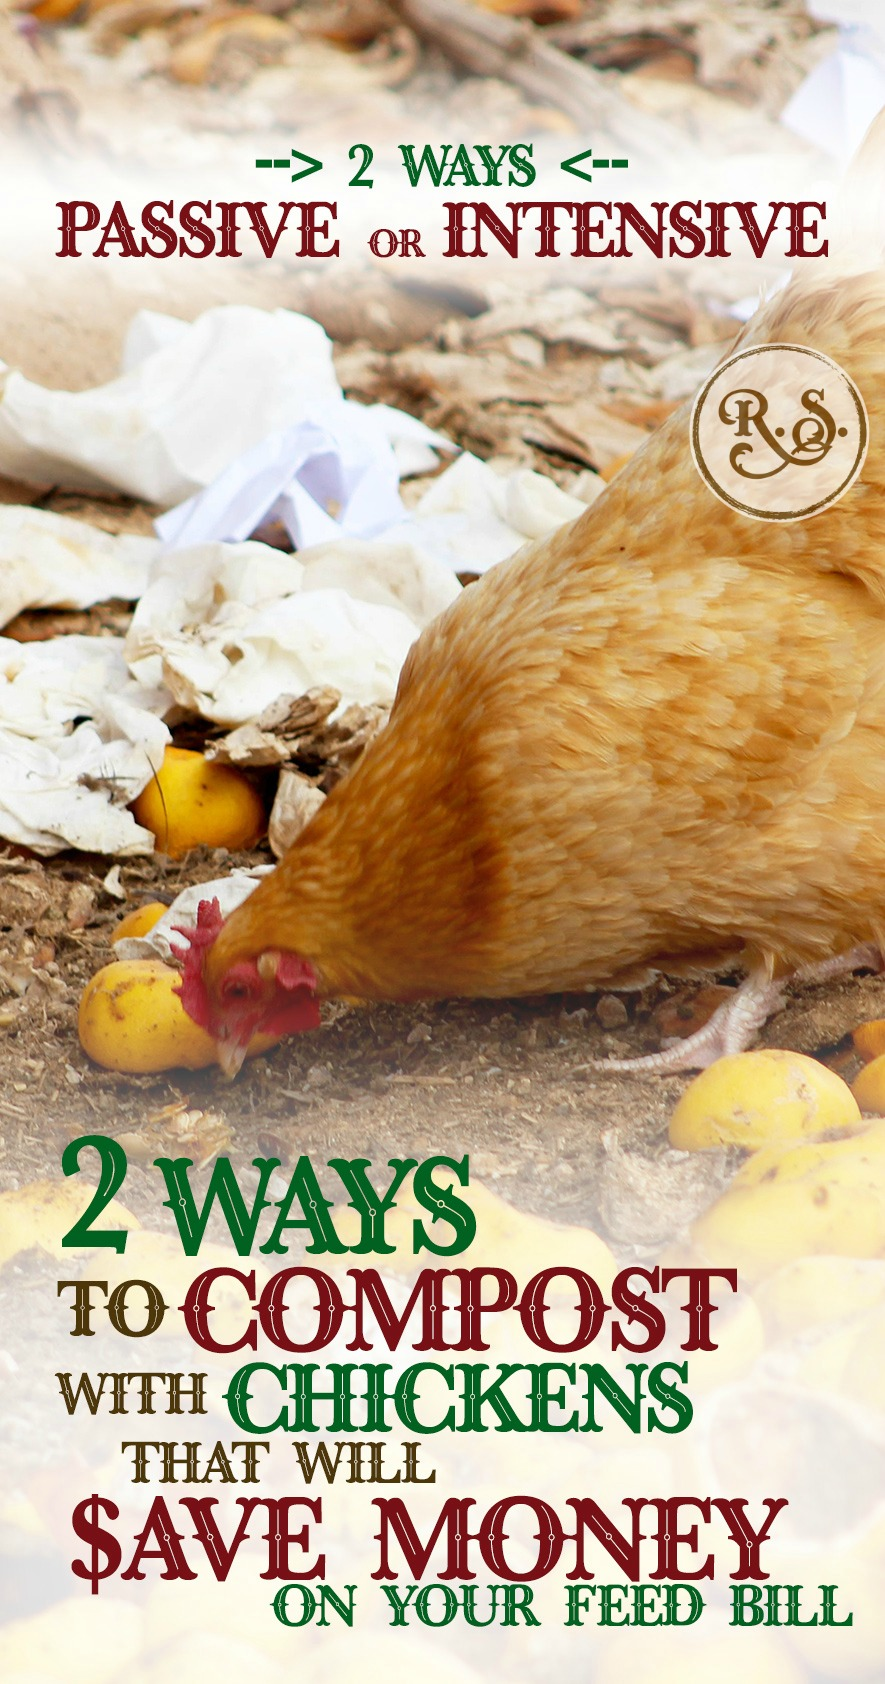 Beginner & advanced chicken raisers can cut their feed bill drastically when they start composting. Make feeding those chickens more sustainable for your homestead.